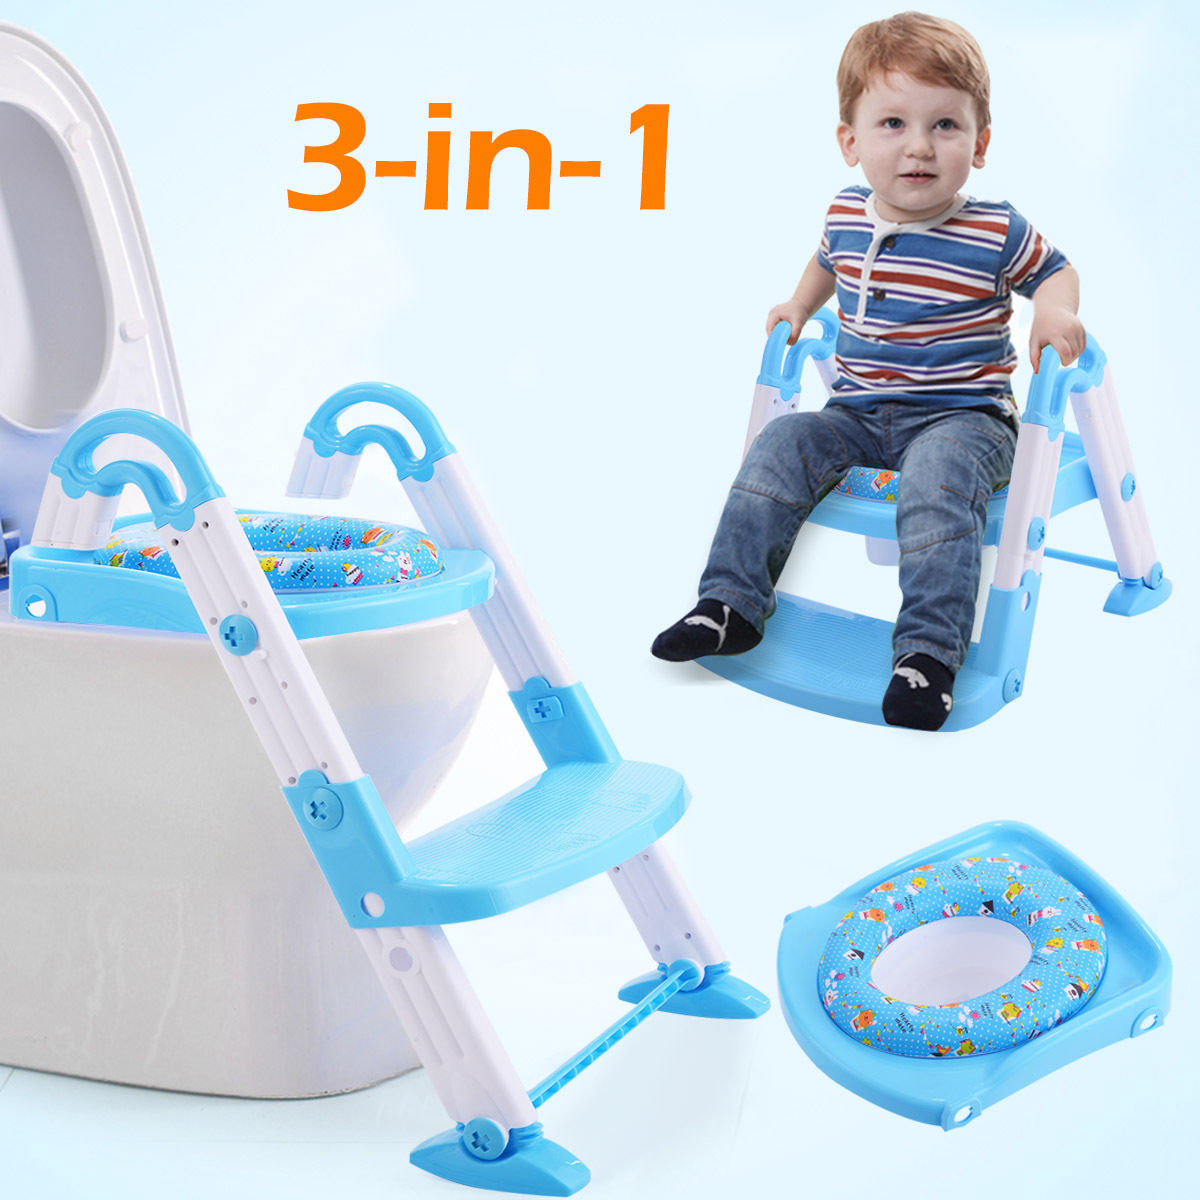 Costway 3 In 1 Baby Potty Training Toilet Chair Seat Step